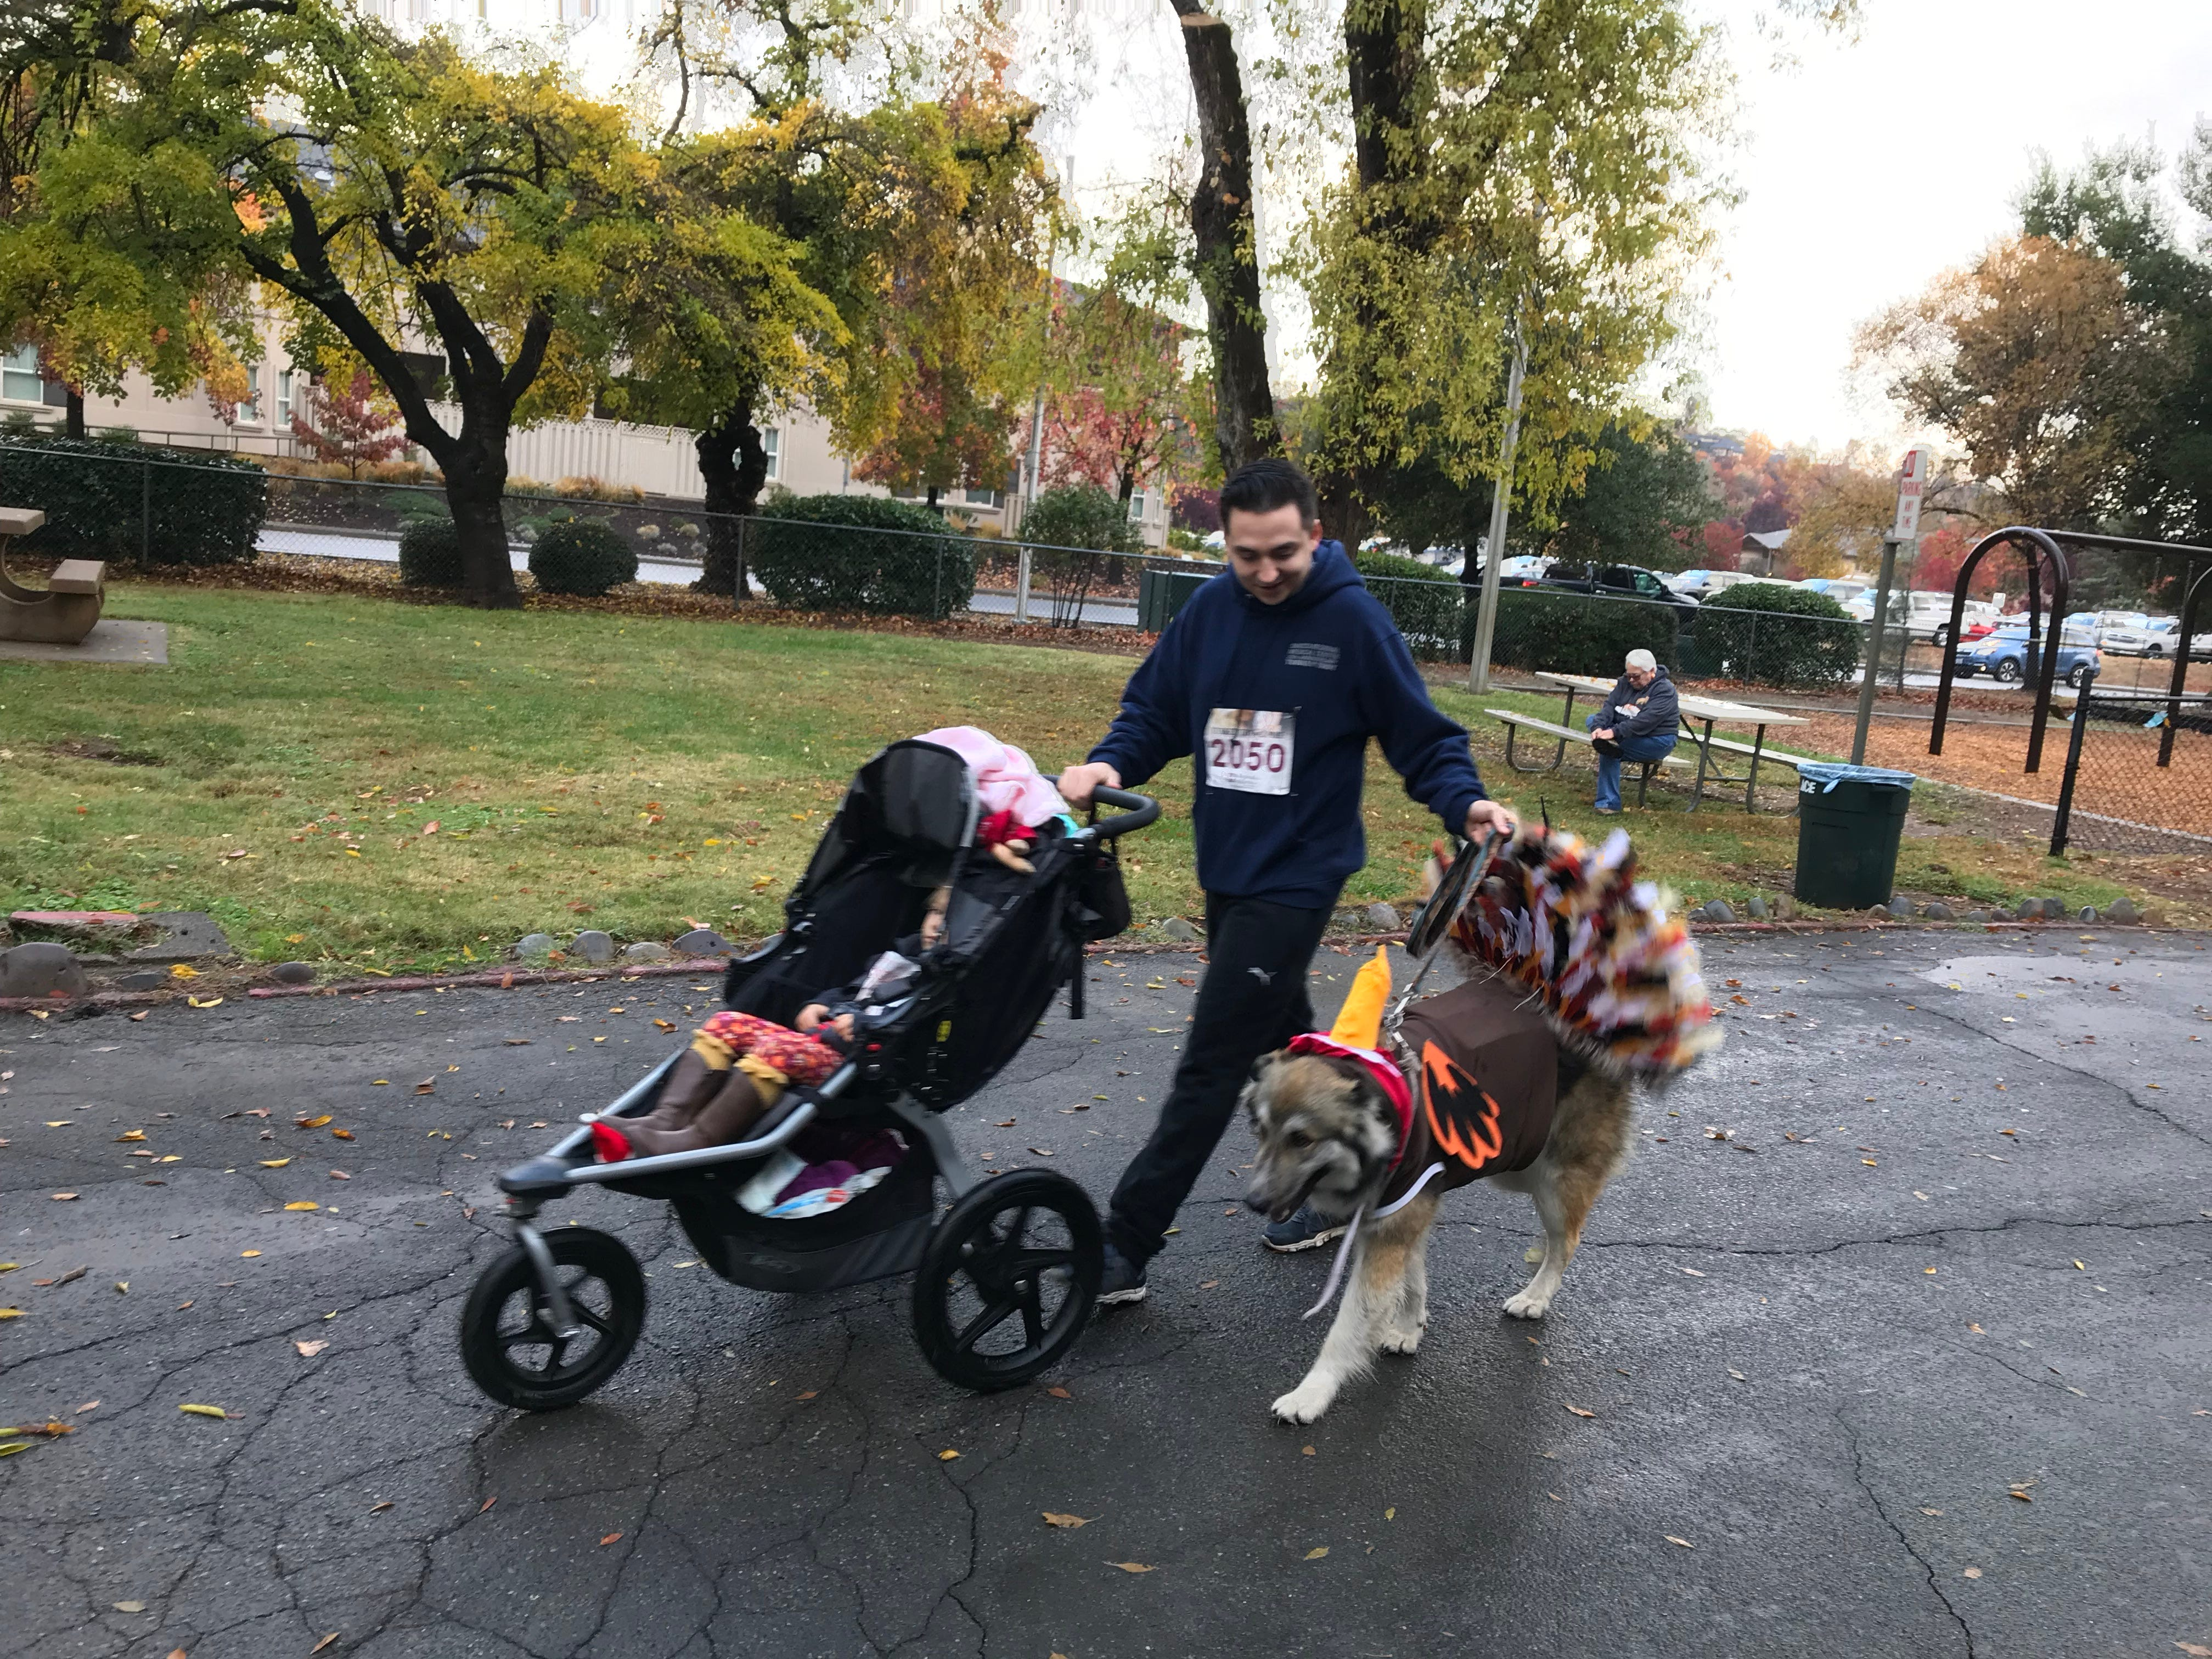 Moose the dog dressed as a turkey and his owner, Zakari Velenzuela. Jordan rides in the stroller.